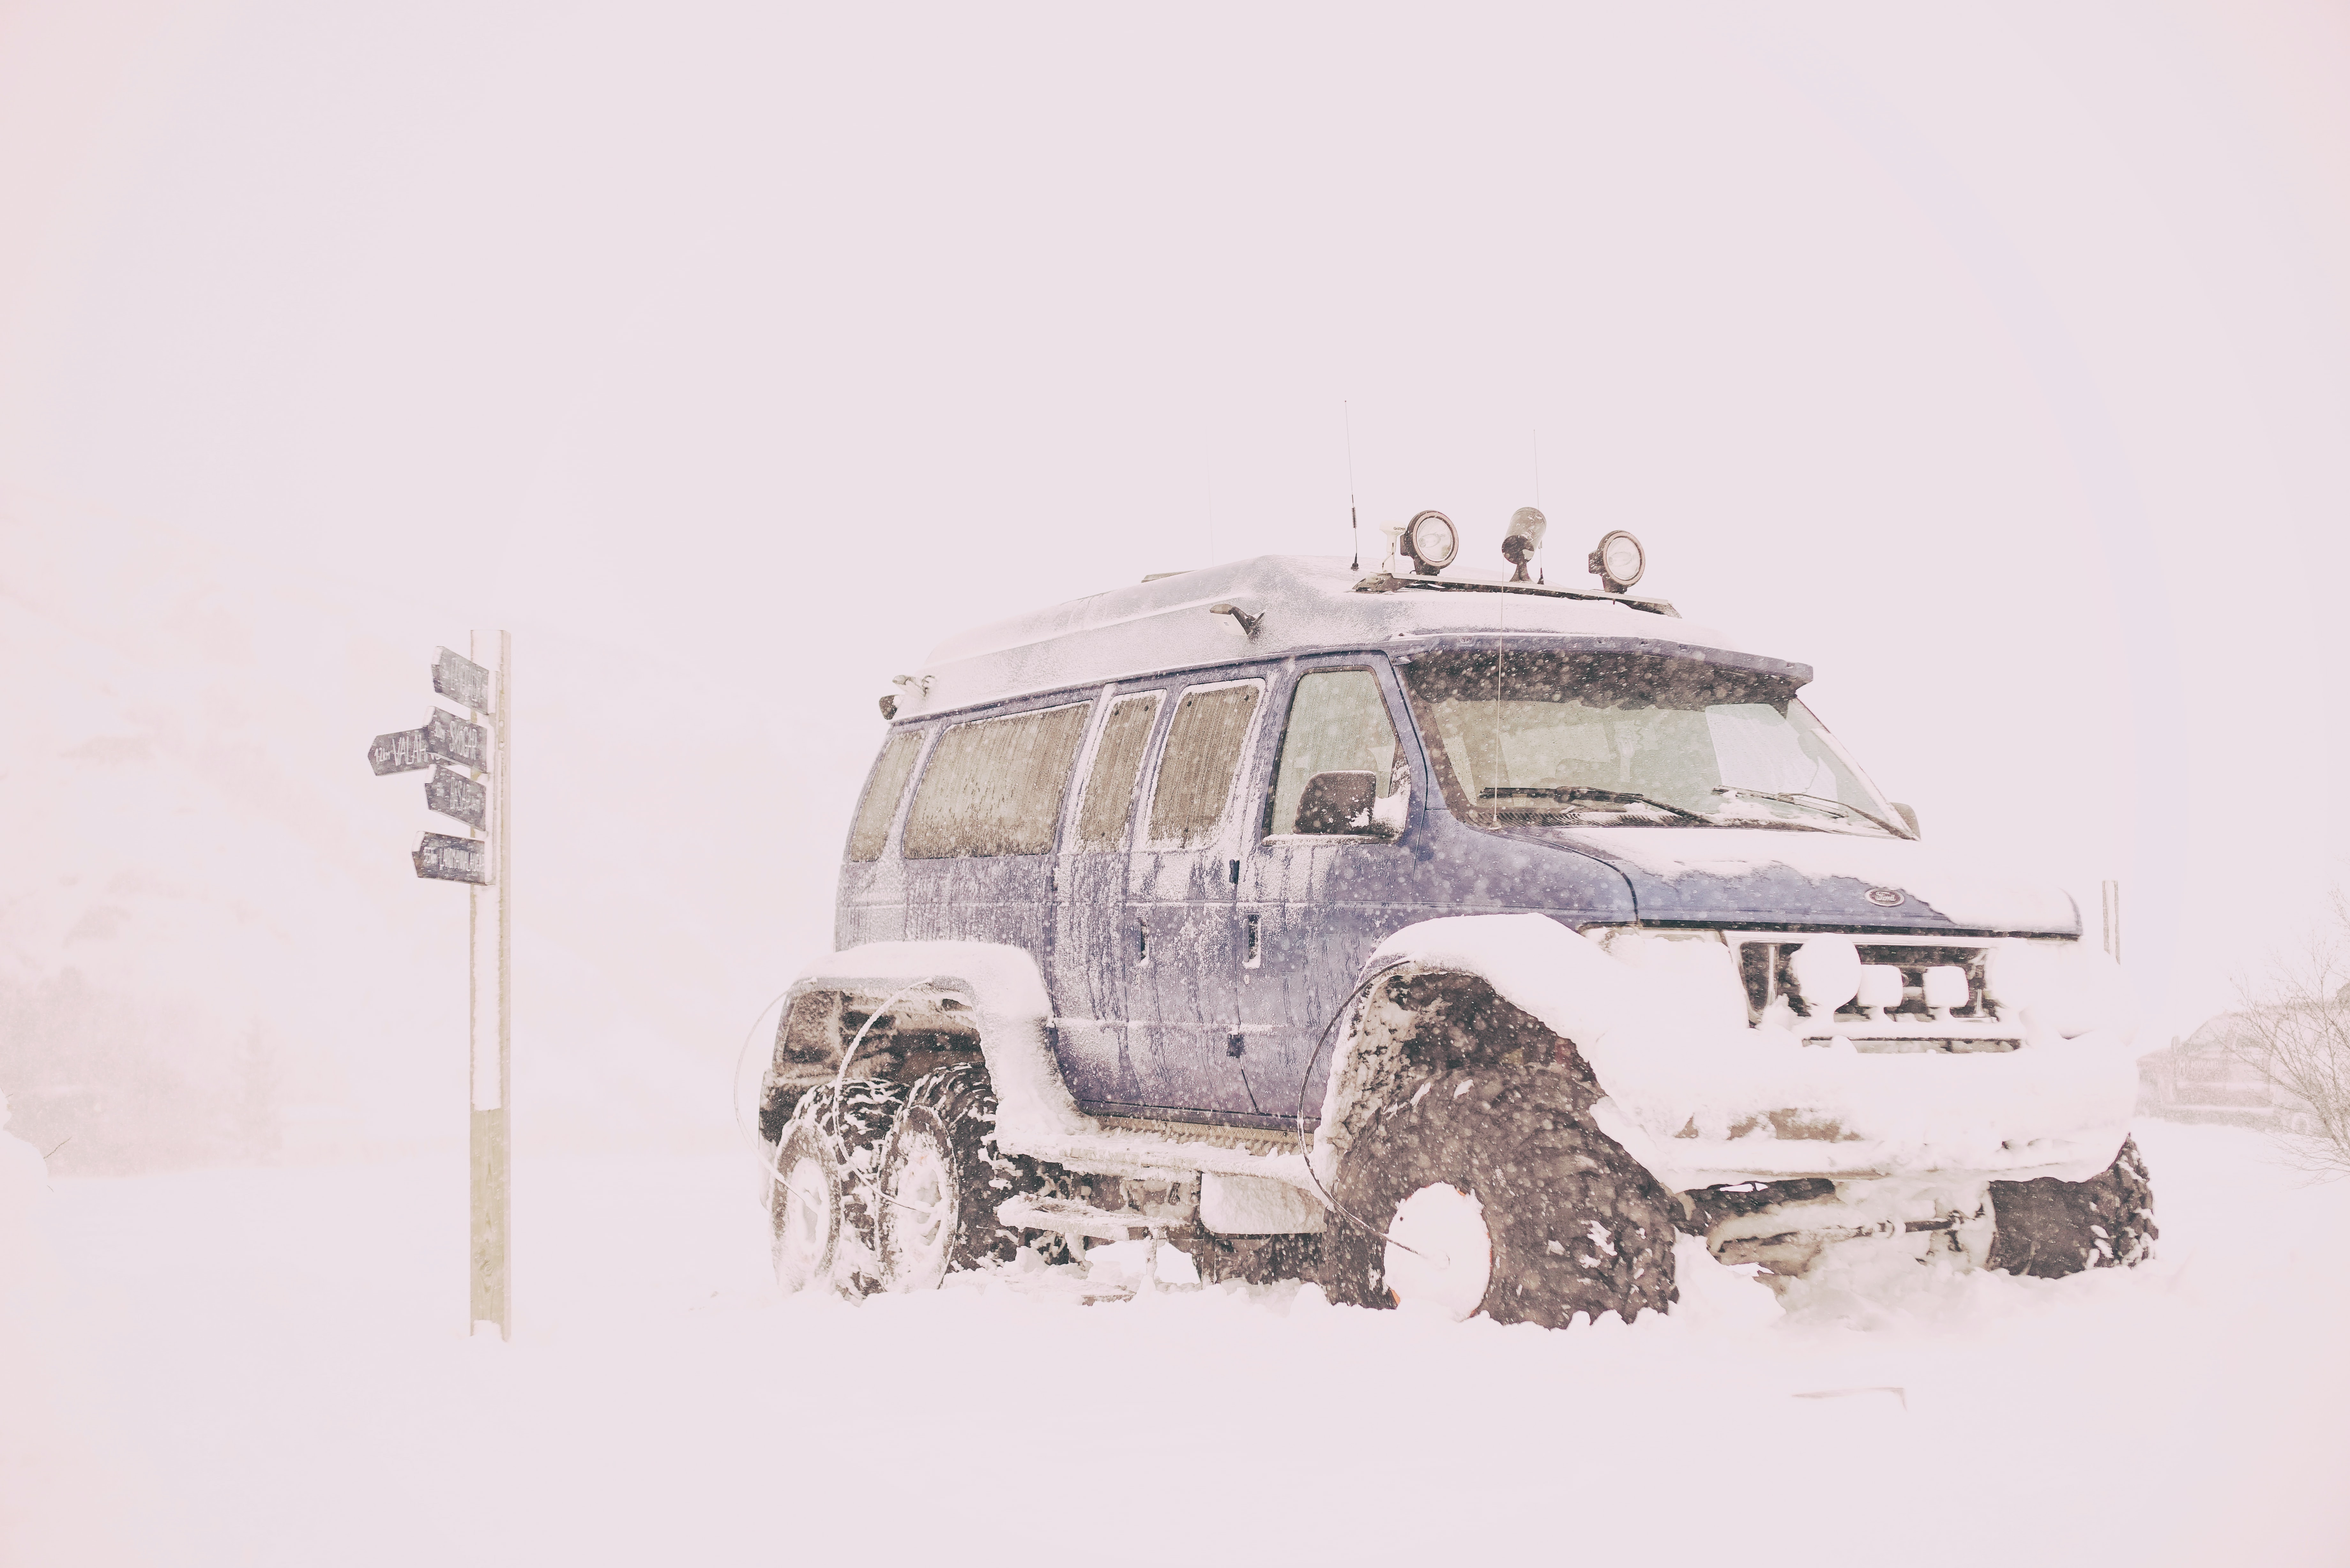 A 4x4 vehicle with flood lights driving through the snow in Iceland